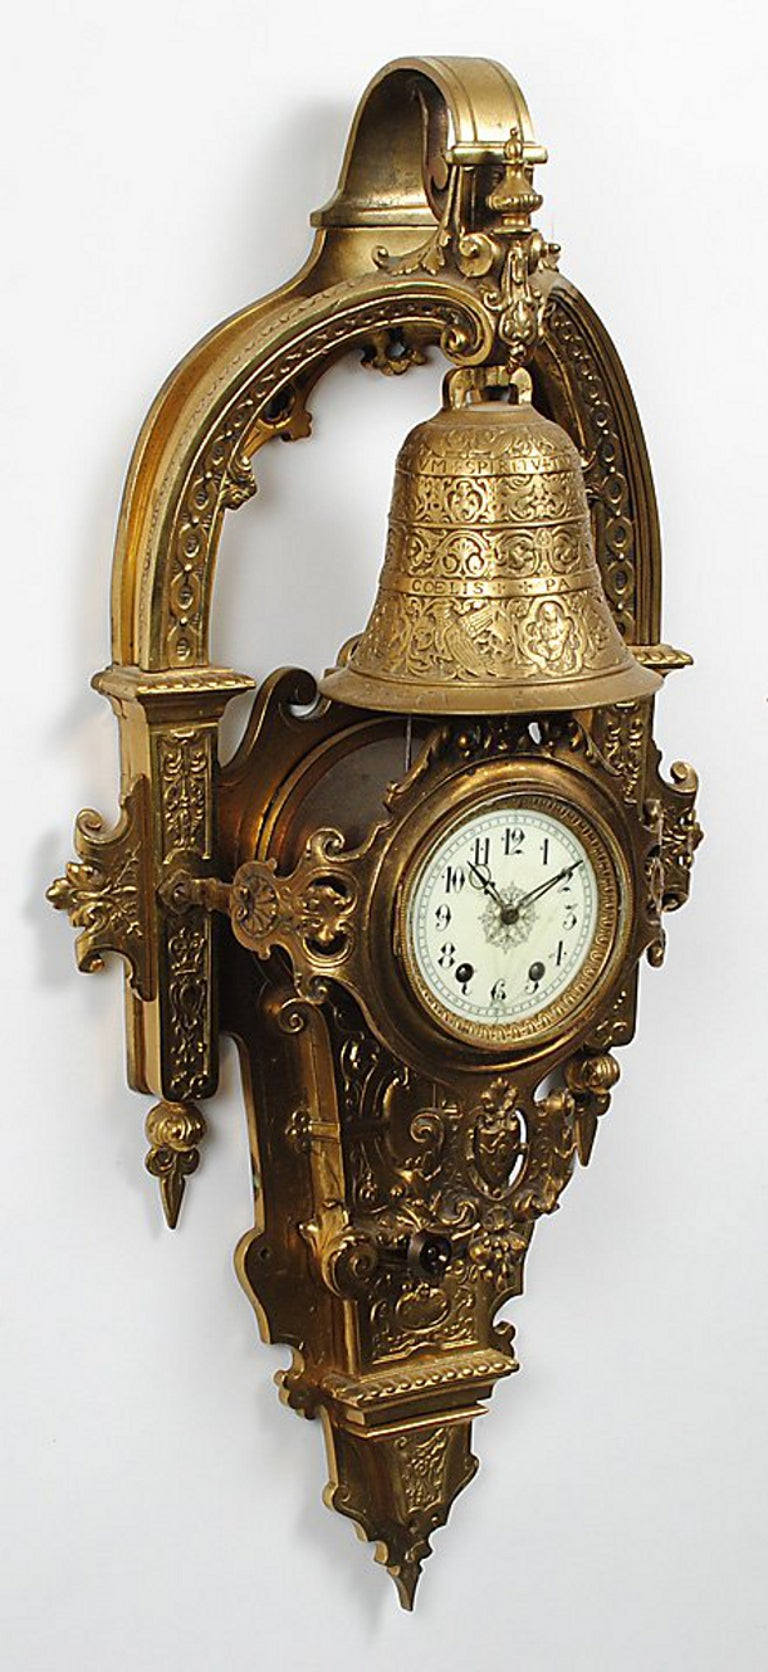 An impressively large Napoleon III period Cartel clock, the case with decoration combining elements of the fashionable Baroque & Renaissance Revival styles. The clock movement stamped 's. Marti' by the maker Samuel Marti et Cie of Paris, a